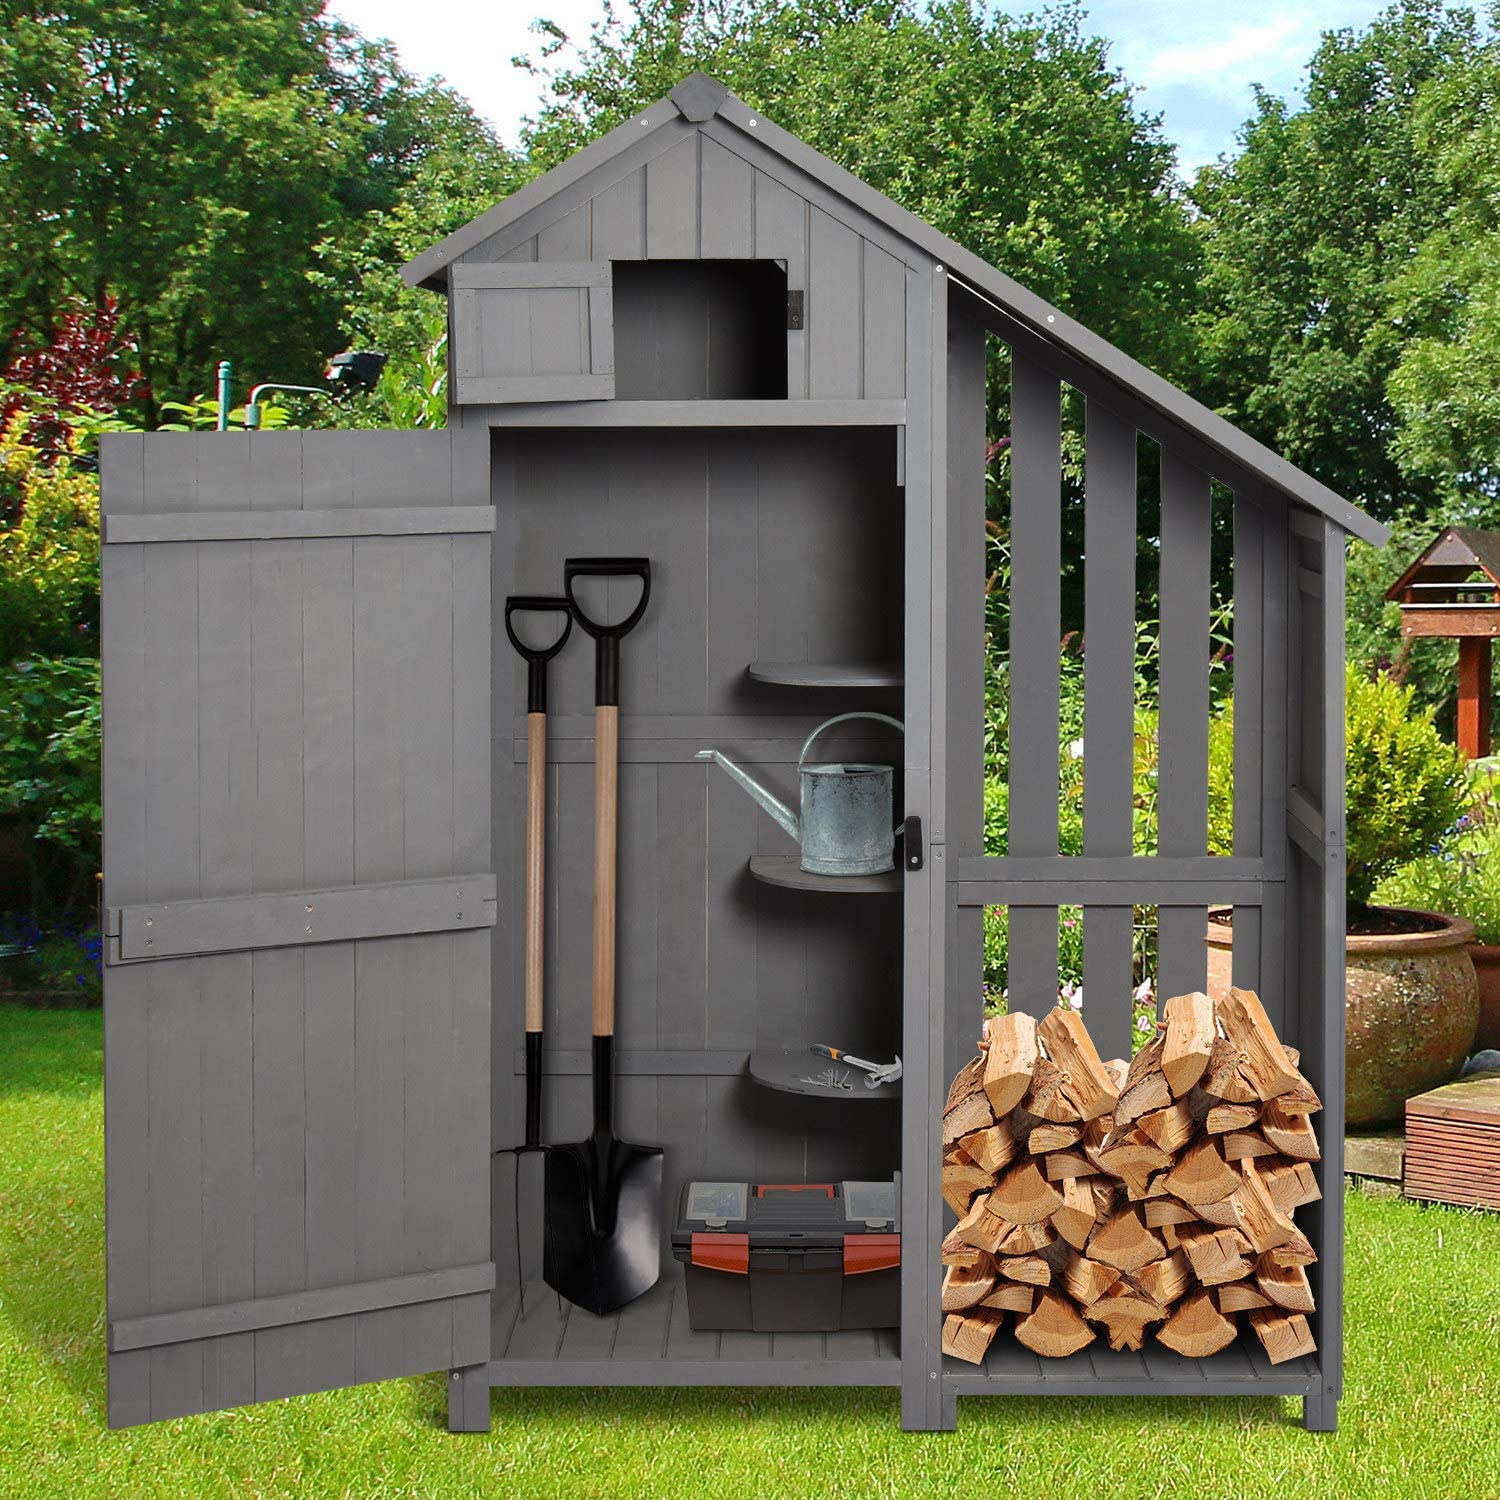 Image for Top 5 Interesting Ideas for Garden Storage